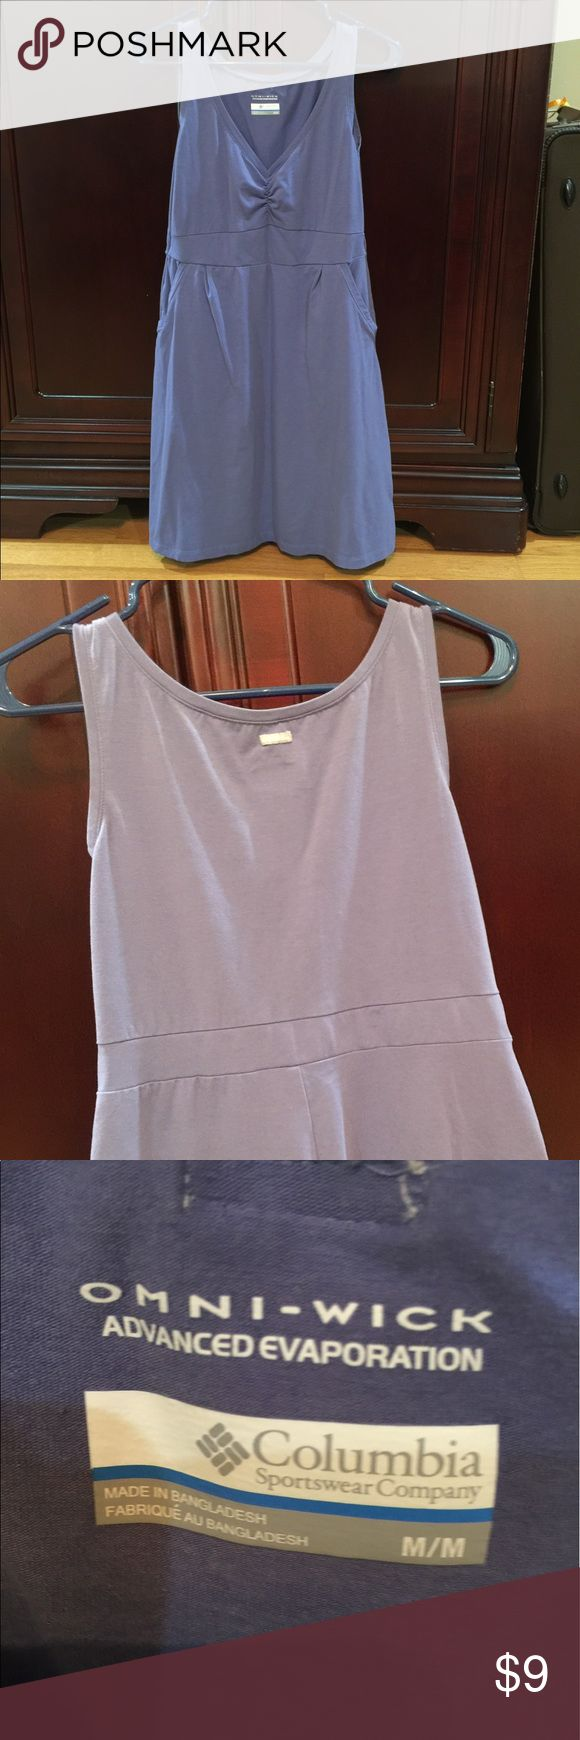 Omni wick Columbia dress in size M Awesome dress for those hot summer days. Soft omni wick to wick the sweat away and help keep you cool. Light purple, very flattering with pockets! Columbia Dresses